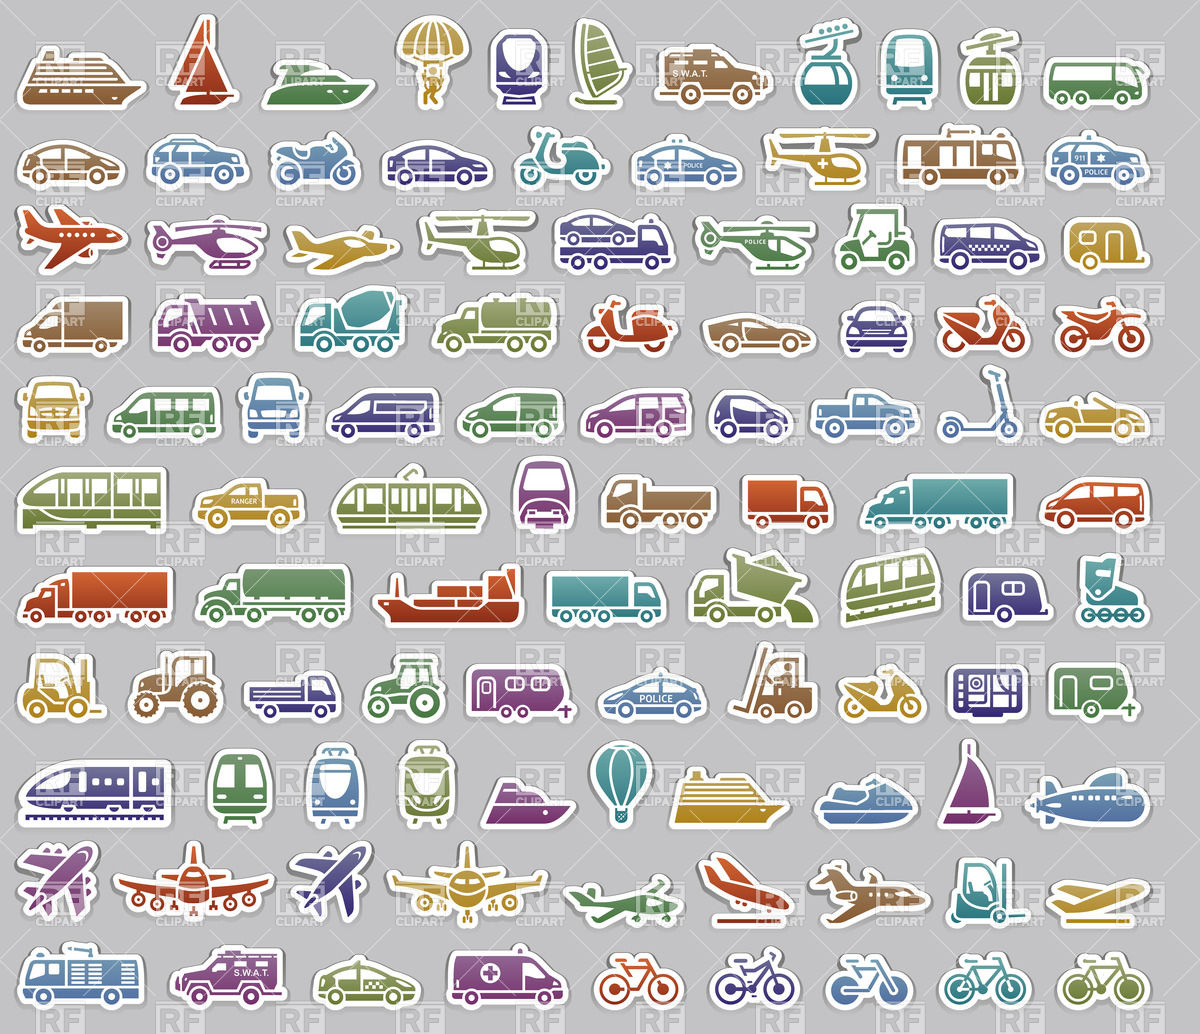 All Types of Transportation Clip Art